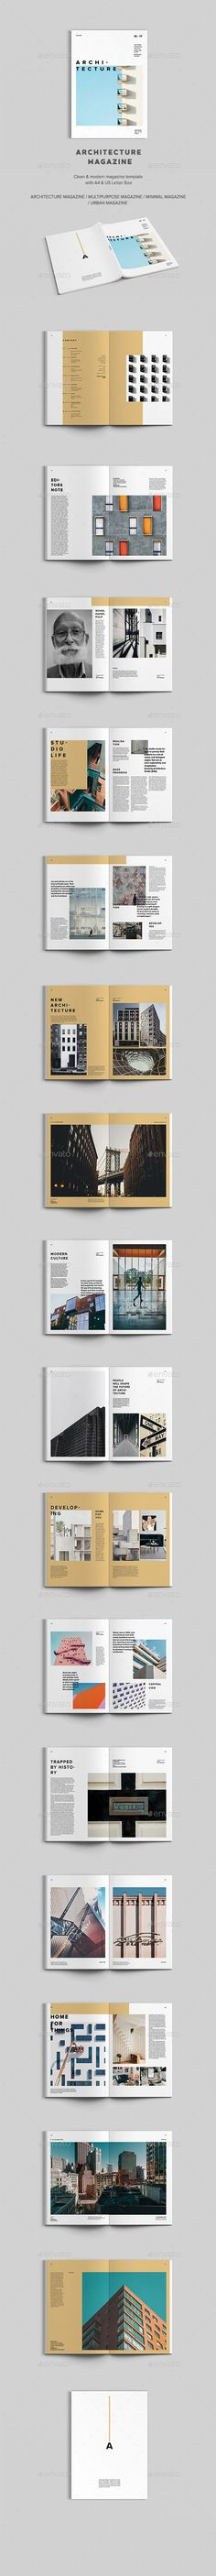 #Creative Architecture Magazine Template - #Architecture #Magazine #Print #Template #Design. Download here: https://graphicriver.net/item/architecture-magazine/19475921?ref=yinkira